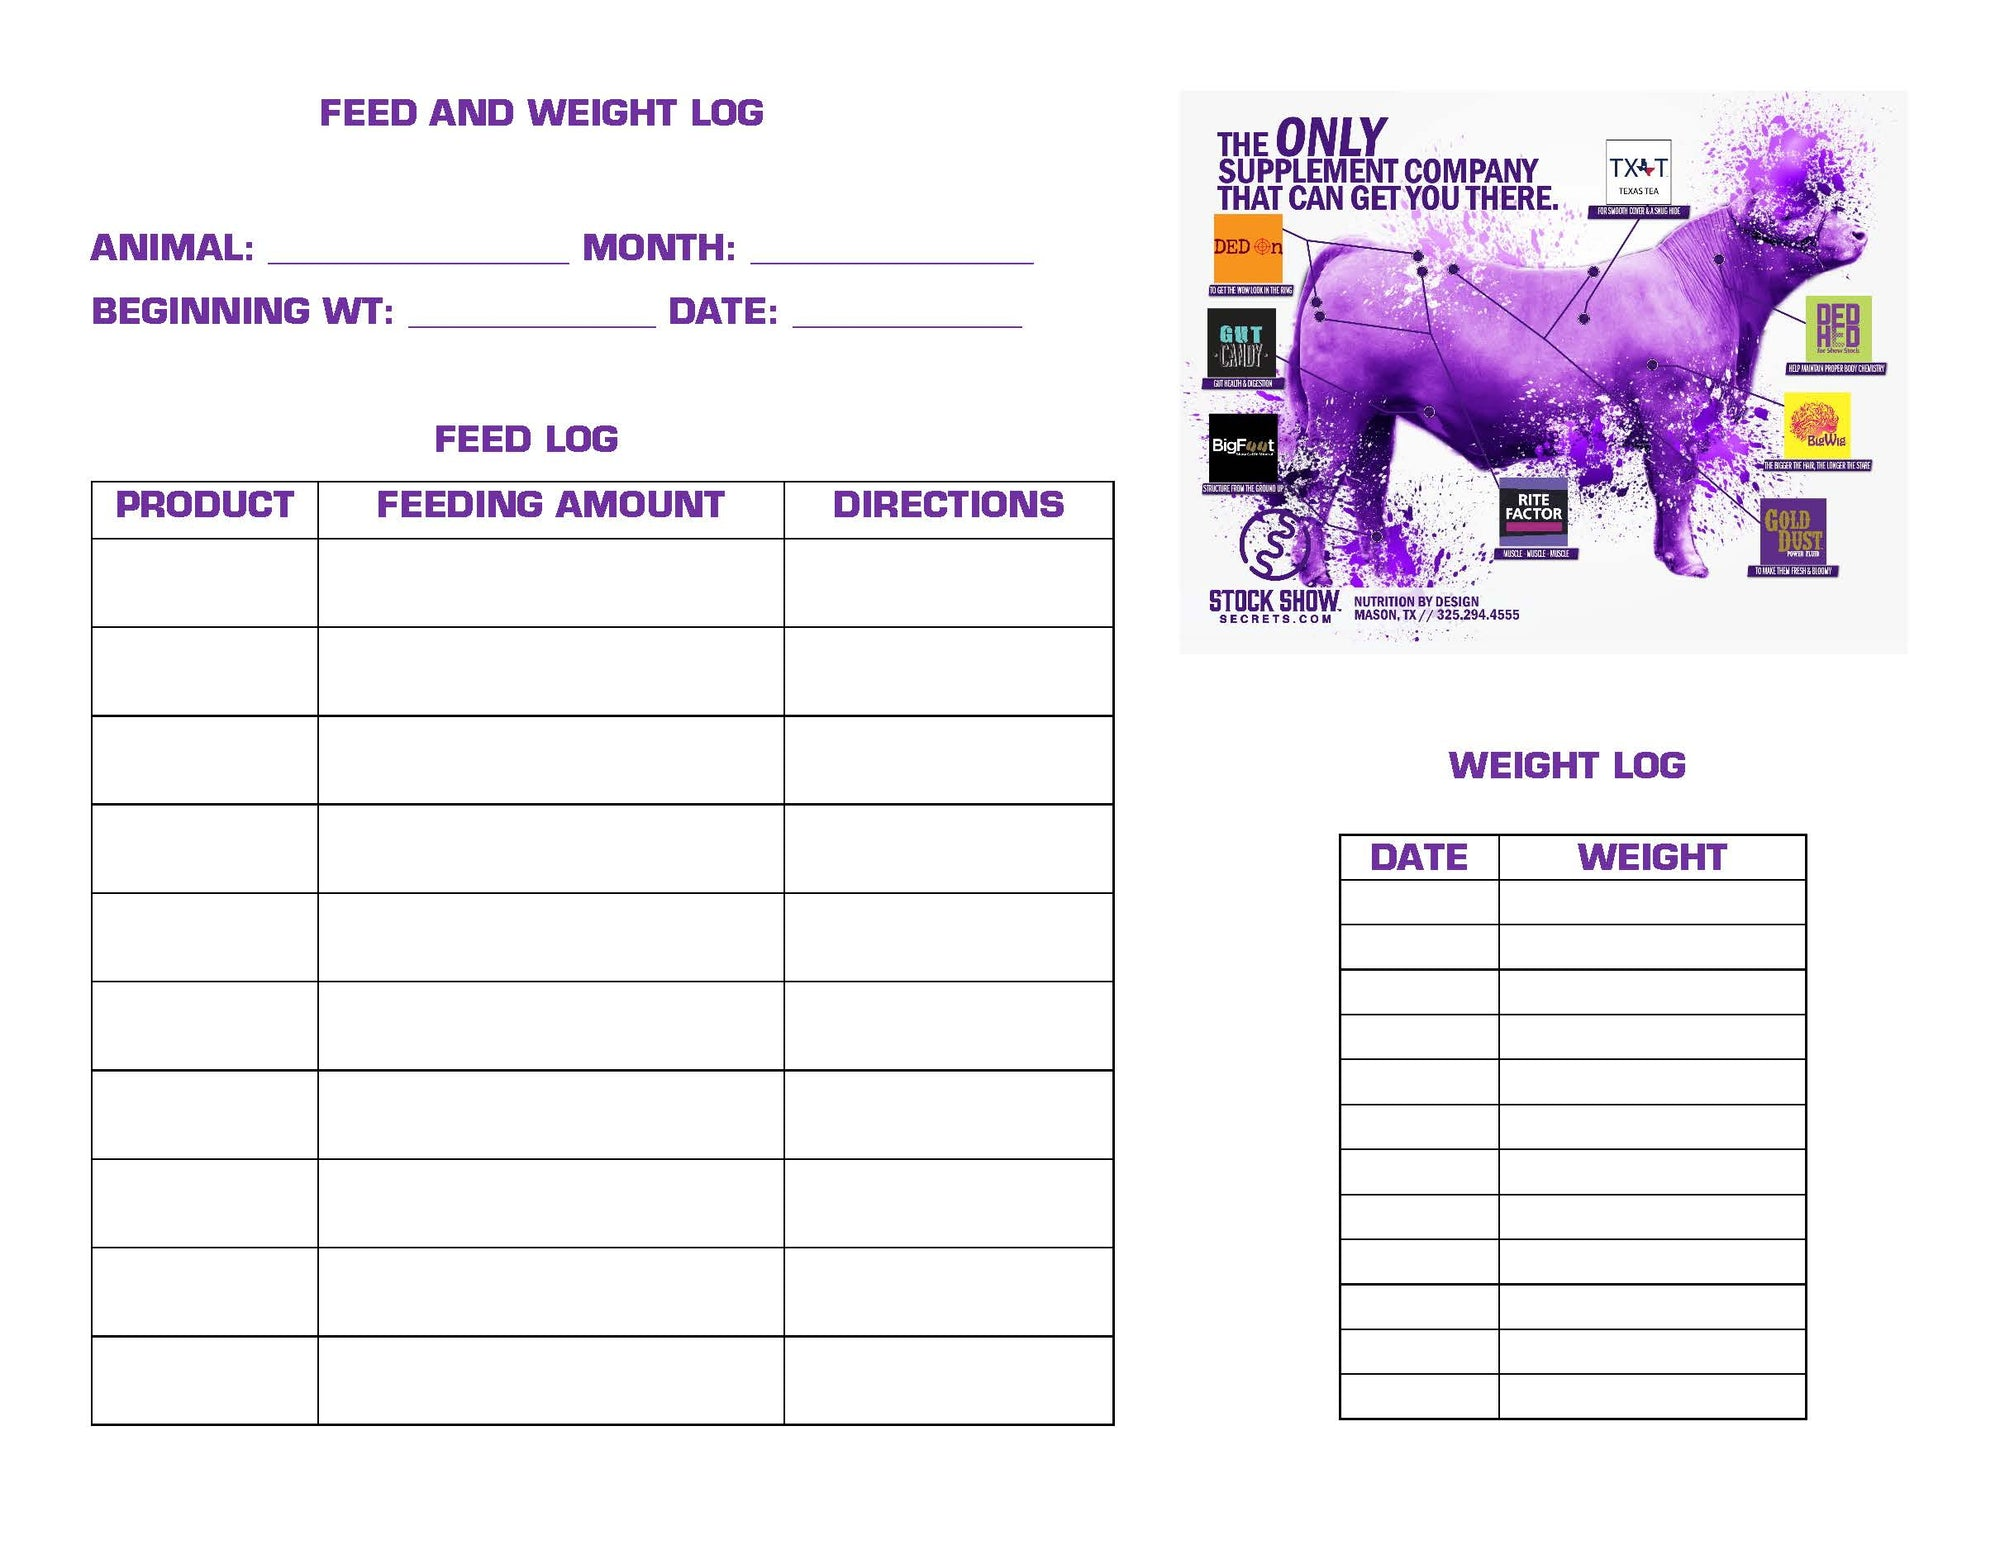 FEED AND WEIGHT LOG -CATTLE    FREE DOWNLOAD